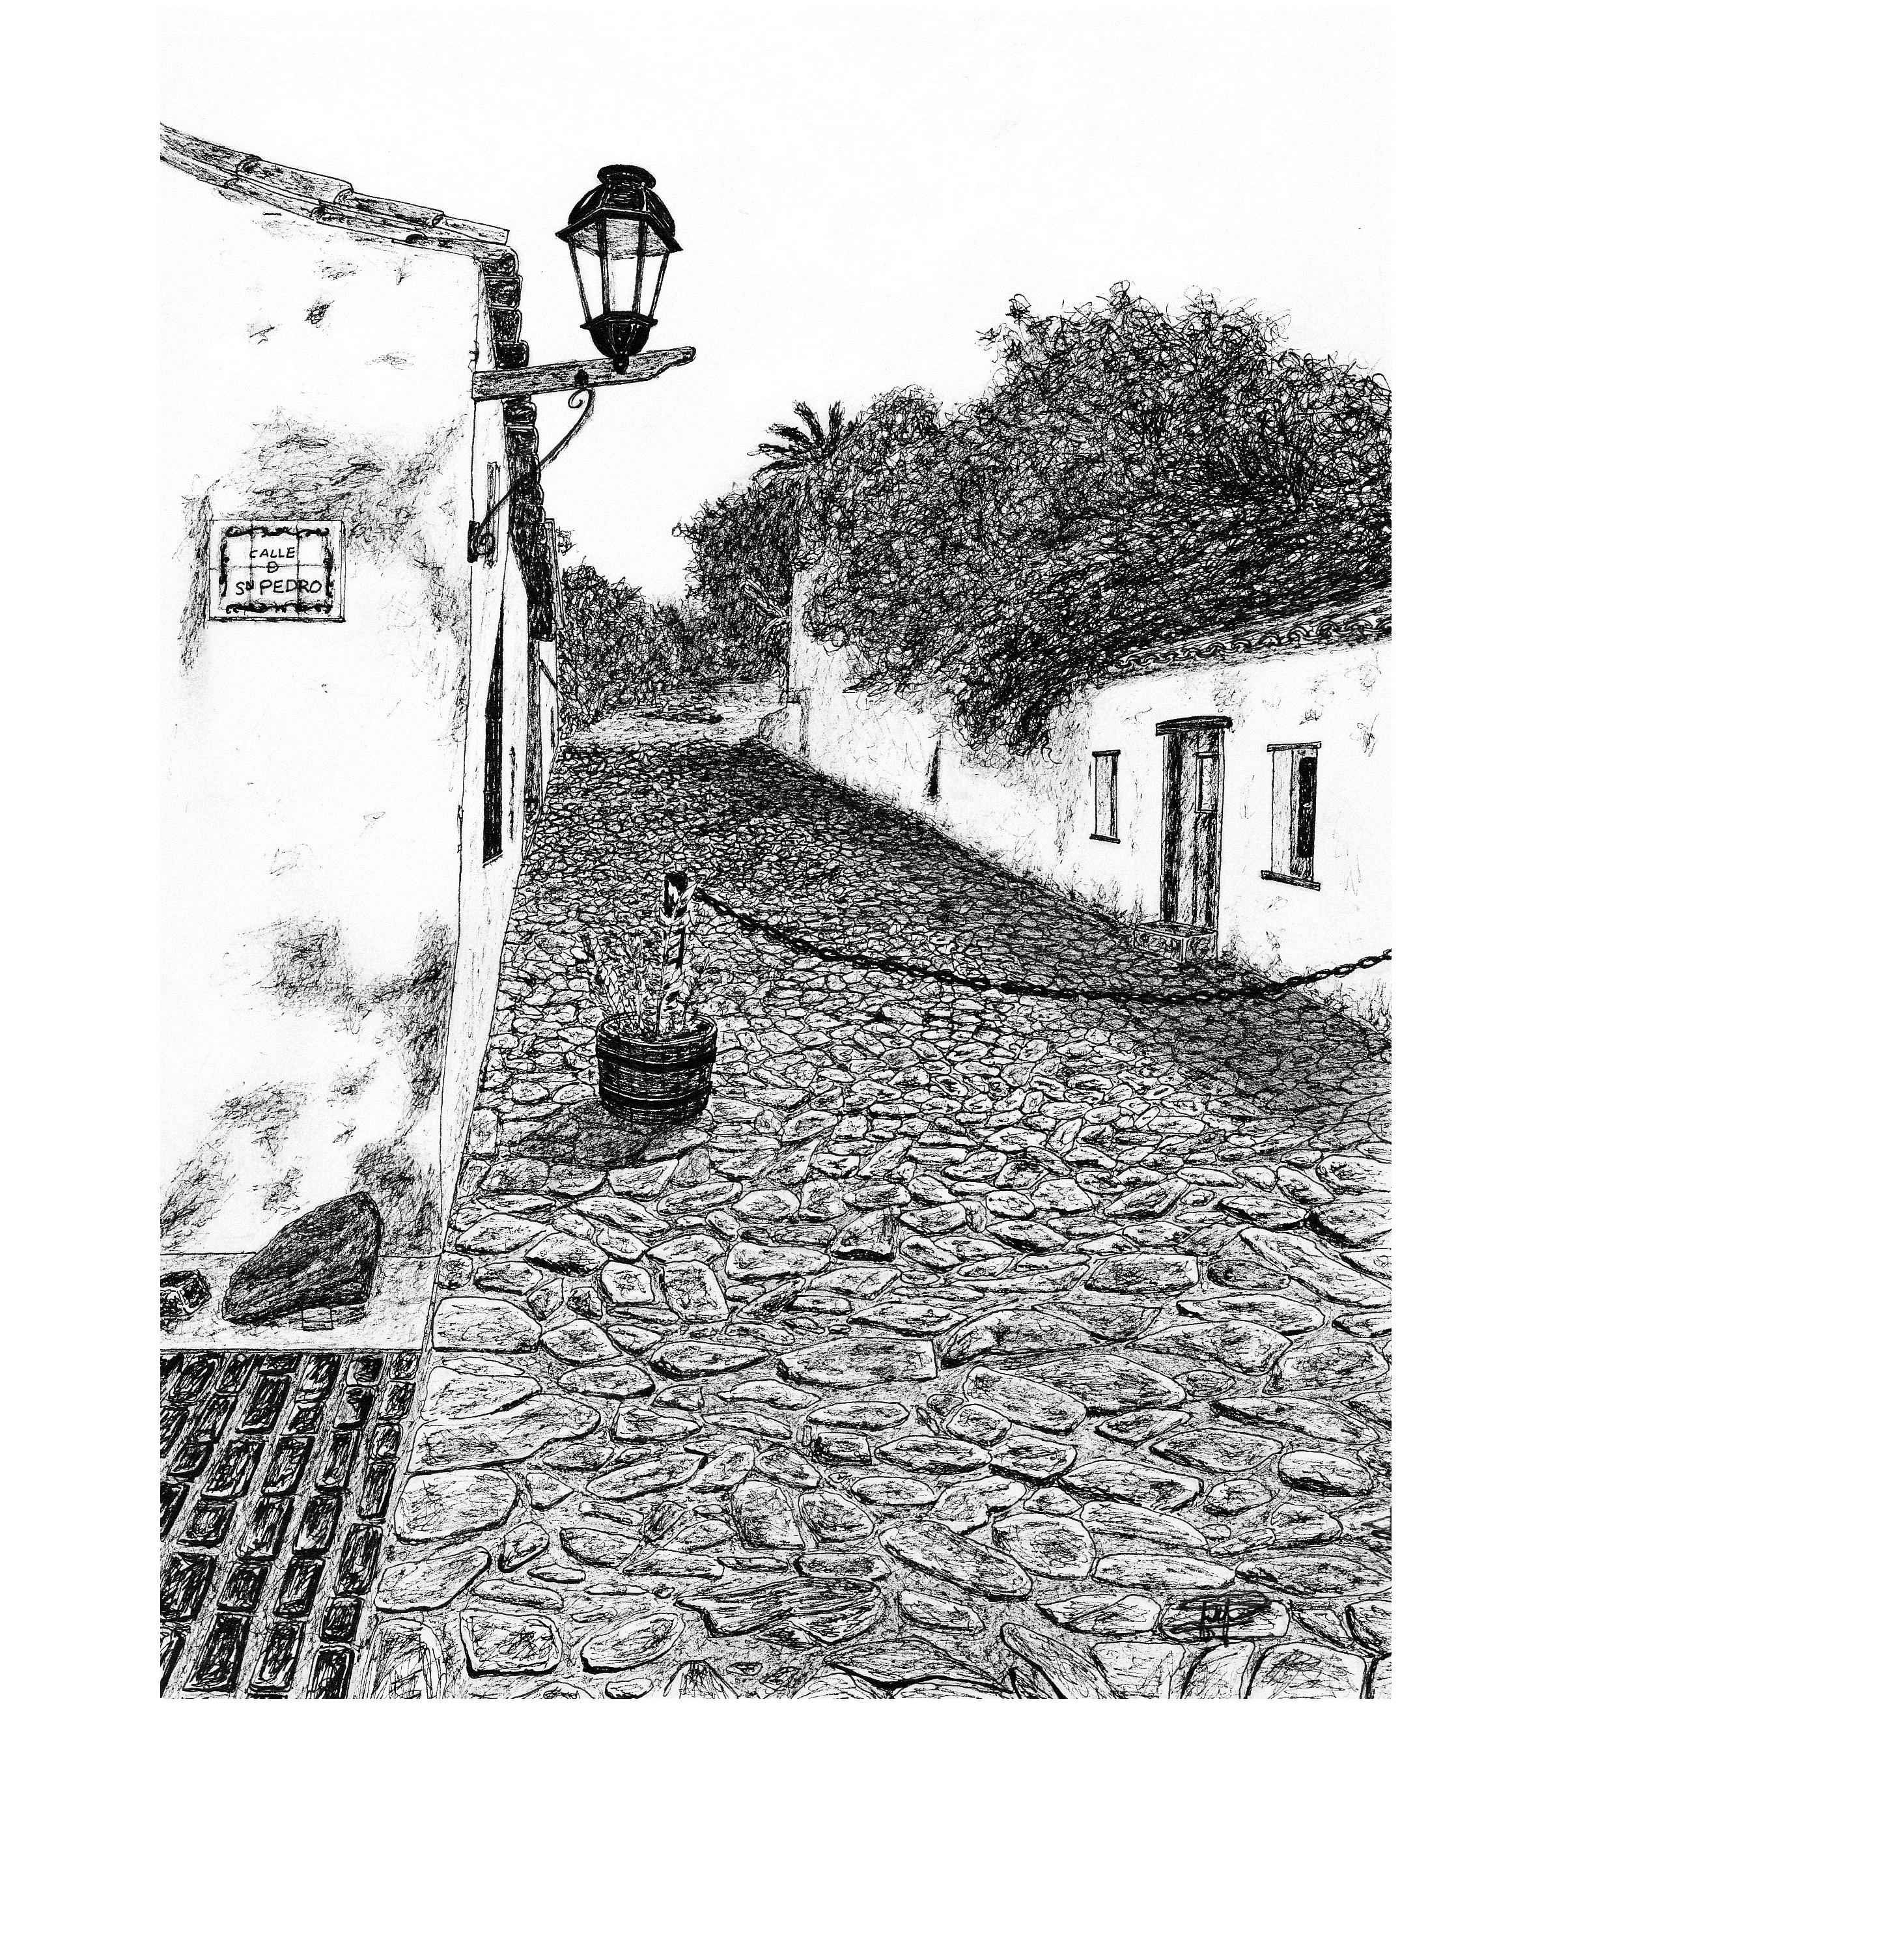 1 Street of Sighs (Colonia del Sacramento UY)